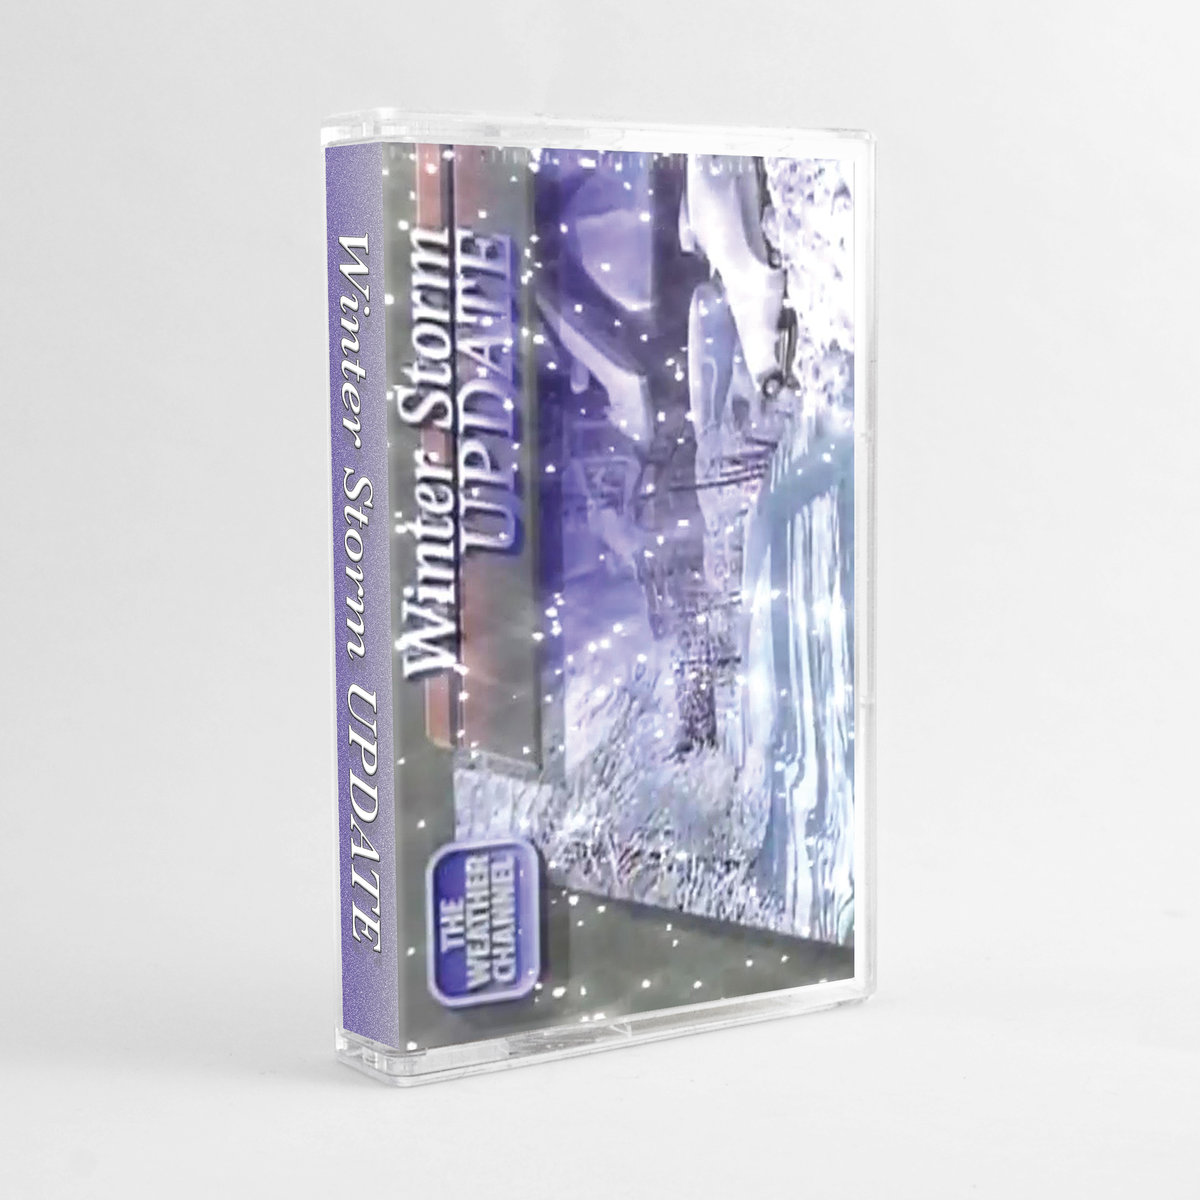 Winter Storm UPDATE by Alternate Skies (Cassette) 9